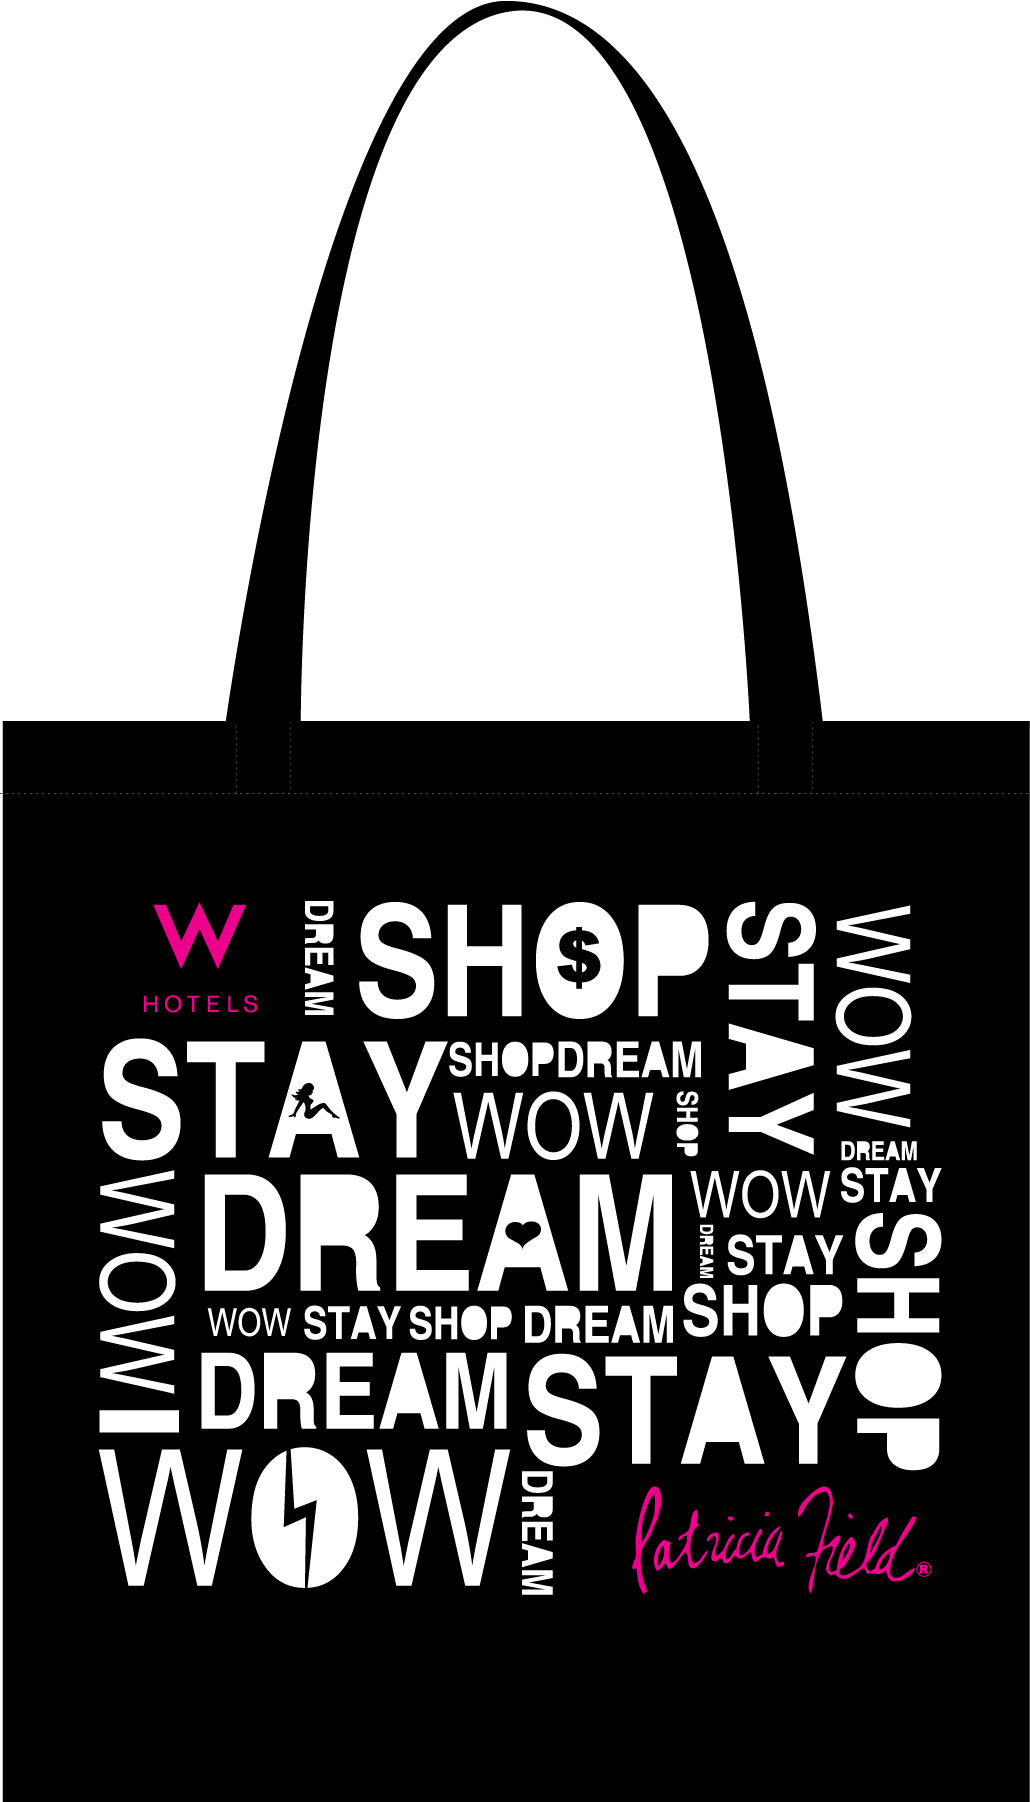 W Hotel Promotional Bag